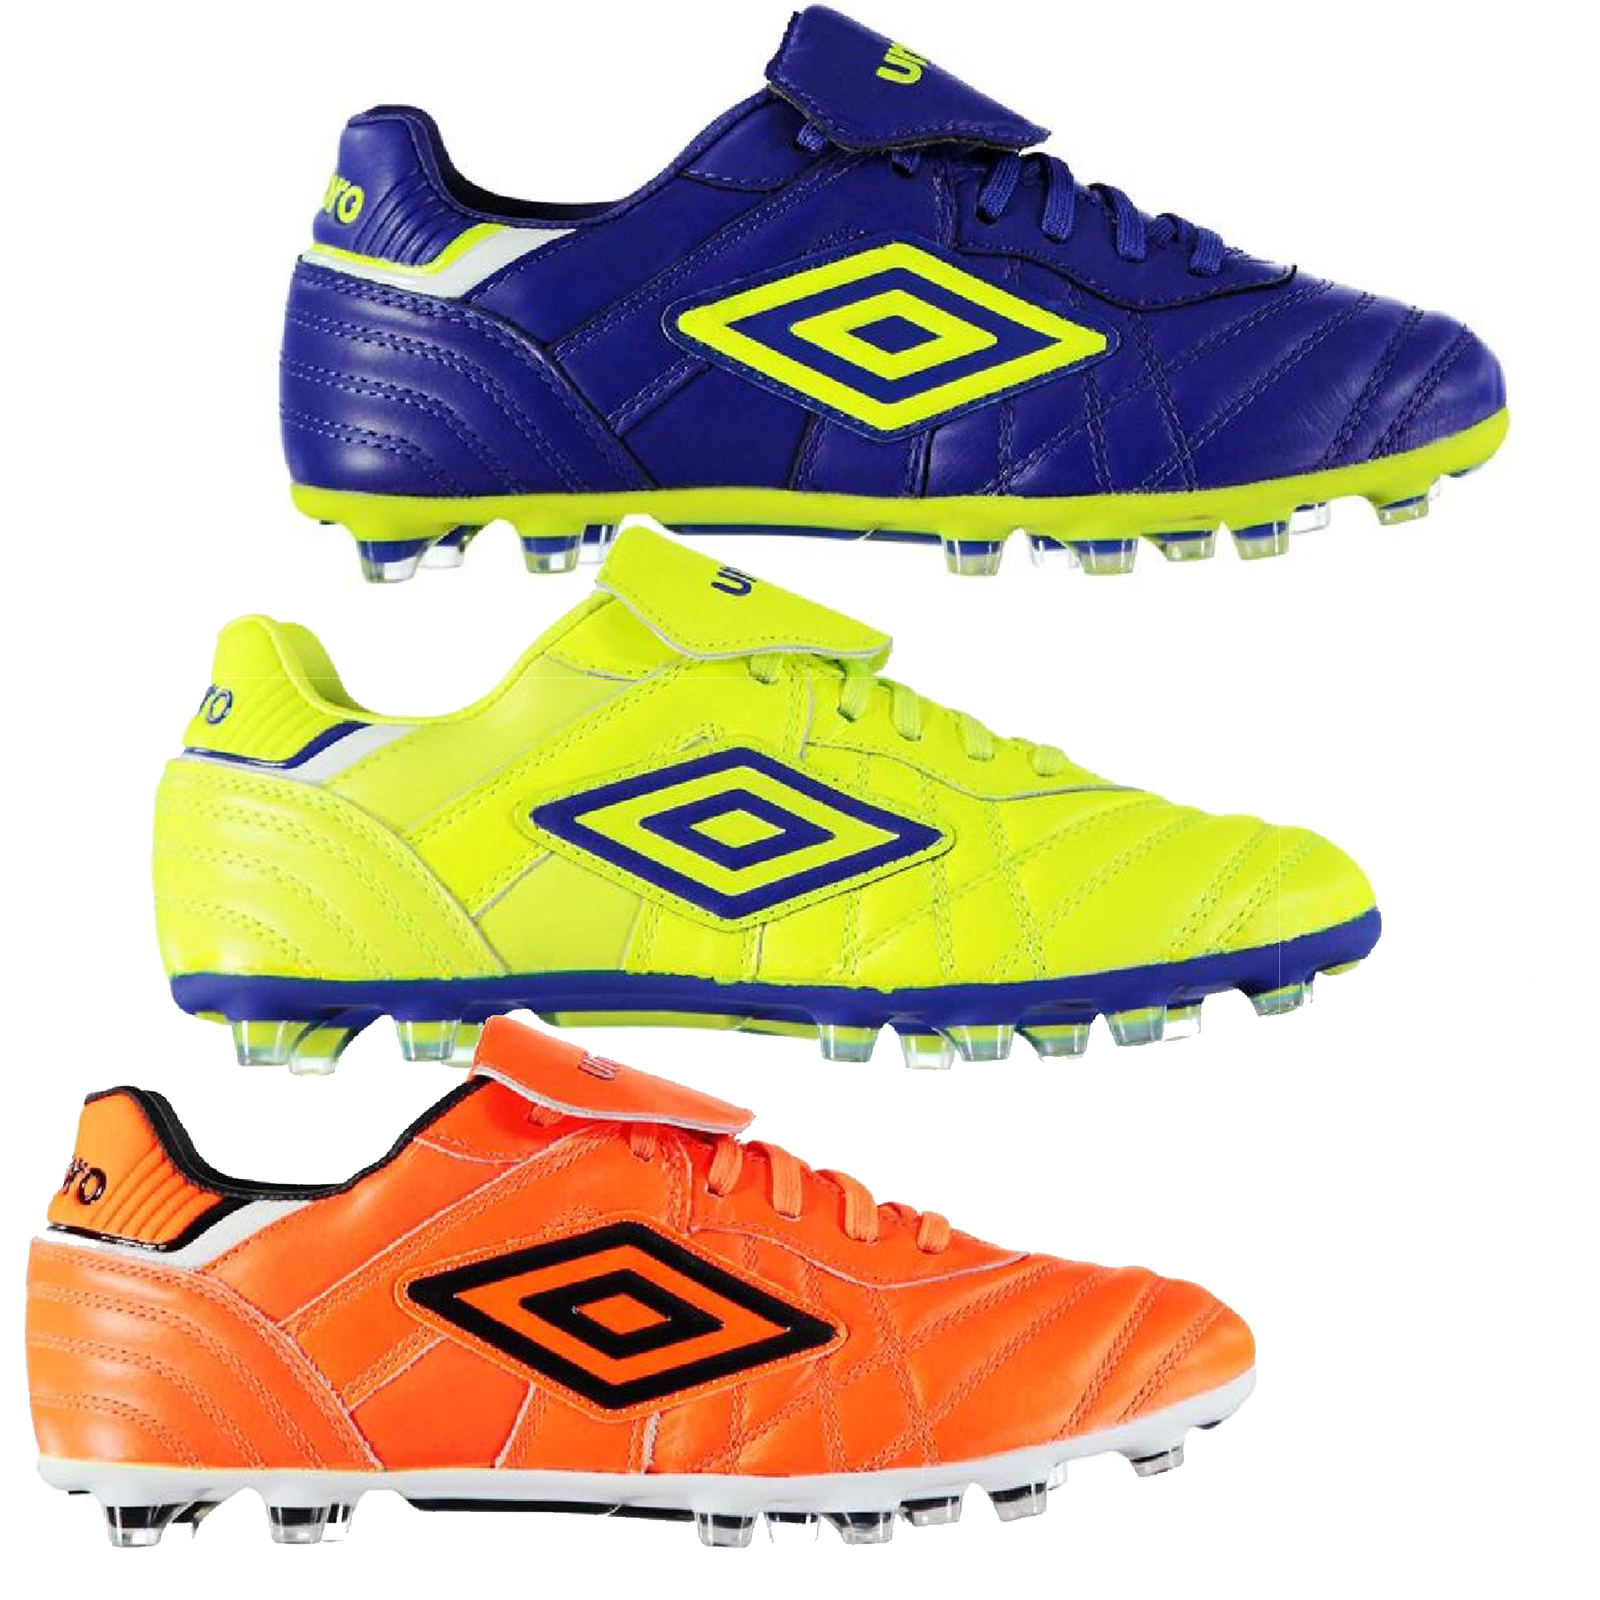 UMBRO Scarpe Calcio Calcio scarpette da calcio uomo FG Firm Ground Football 022